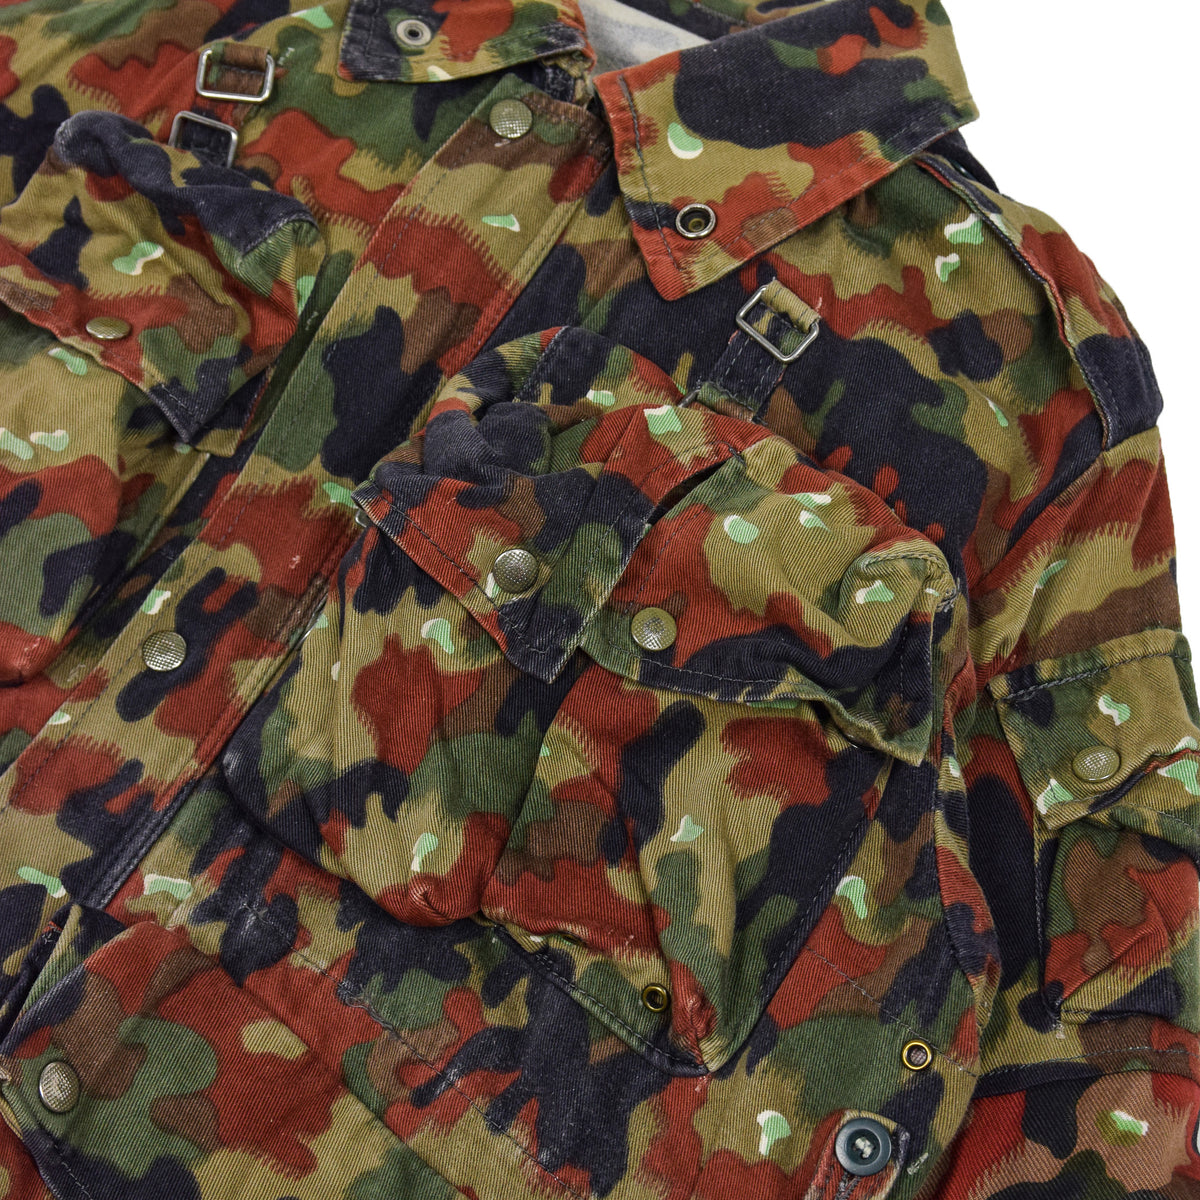 Vintage 70s Swiss Army Alpenflage Camo Sniper Combat Field Jacket M / L pocket detail